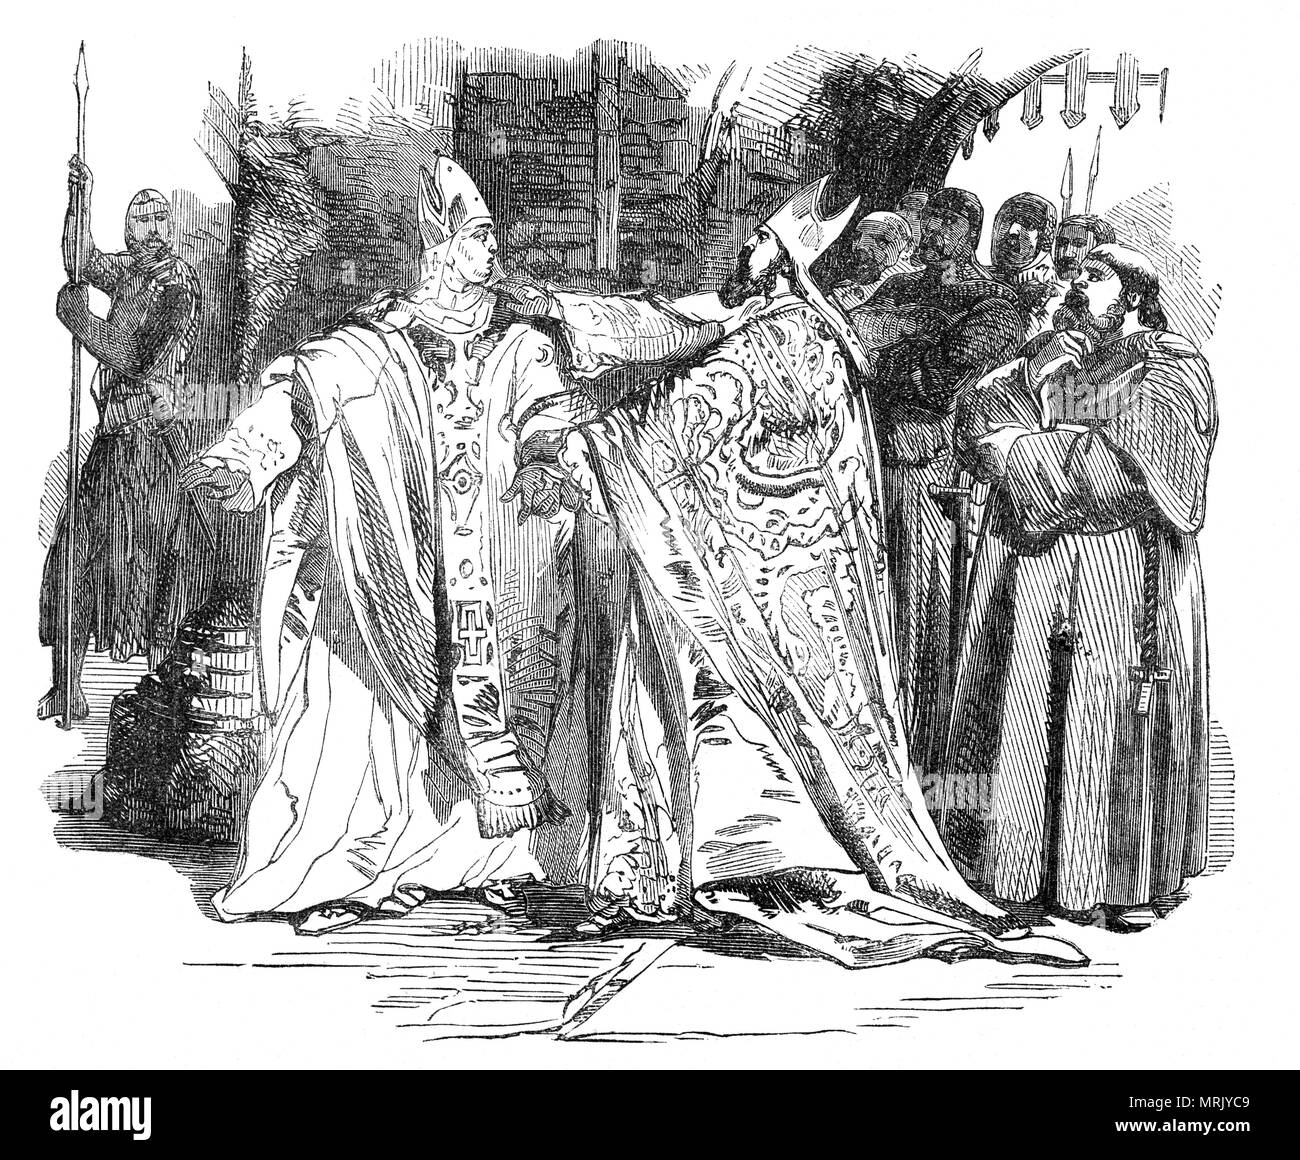 William de Longchamp, medieval Lord Chancellor, Chief Justiciar, and Bishop of Ely in England arresting Hugh de Puiset aka Hugh Pudsey, a medieval Bishop of Durham and Chief Justiciar of England under King Richard I.  Longchamp and Puiset were unable to work together, and so in March 1190 Richard gave authority north of the River Humber to Hugh, and authority south of the river to Longchamp, but  opinions are divided whether Richard explicitly made Longchamp superior to Puiset at this time, or if in theory the two were supposed to co-equal in their respective spheres. - Stock Image